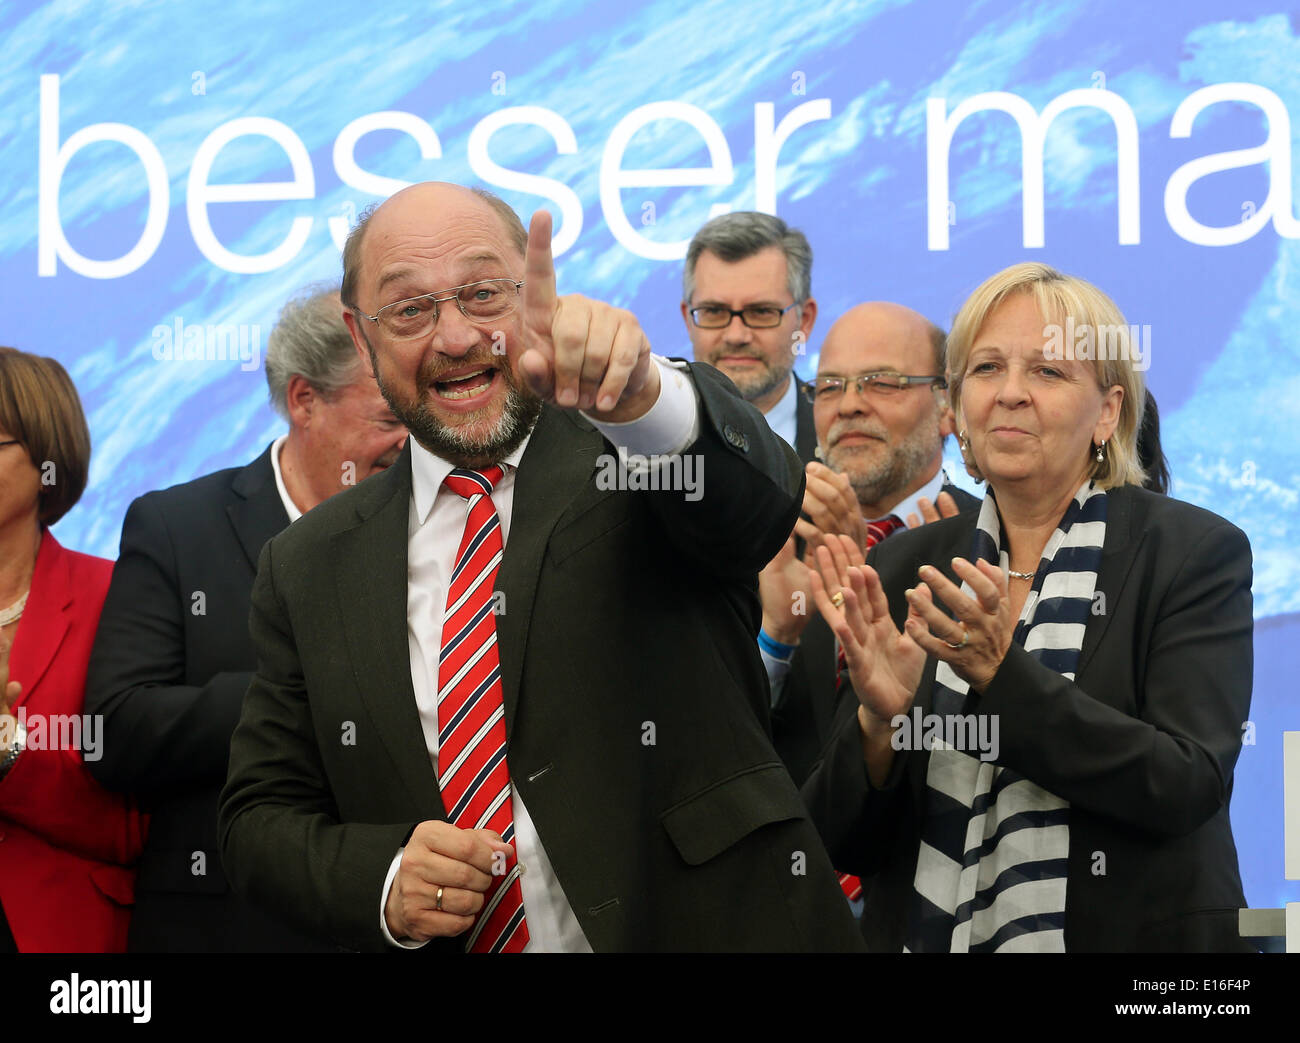 Aachen, Germany. 24th May, 2014. Social democratic frontrunner Martin Schulz (L) is pictured during a last election campaign for the European election 2014 on 25 May 2014 in Aachen, Germany, 24 May 2014. Next to him stands North Rhine-Westphalia's Prime Minister Hannelore Kraft (SPD). Photo: Roland Weihrauch/dpa/Alamy Live News - Stock Image